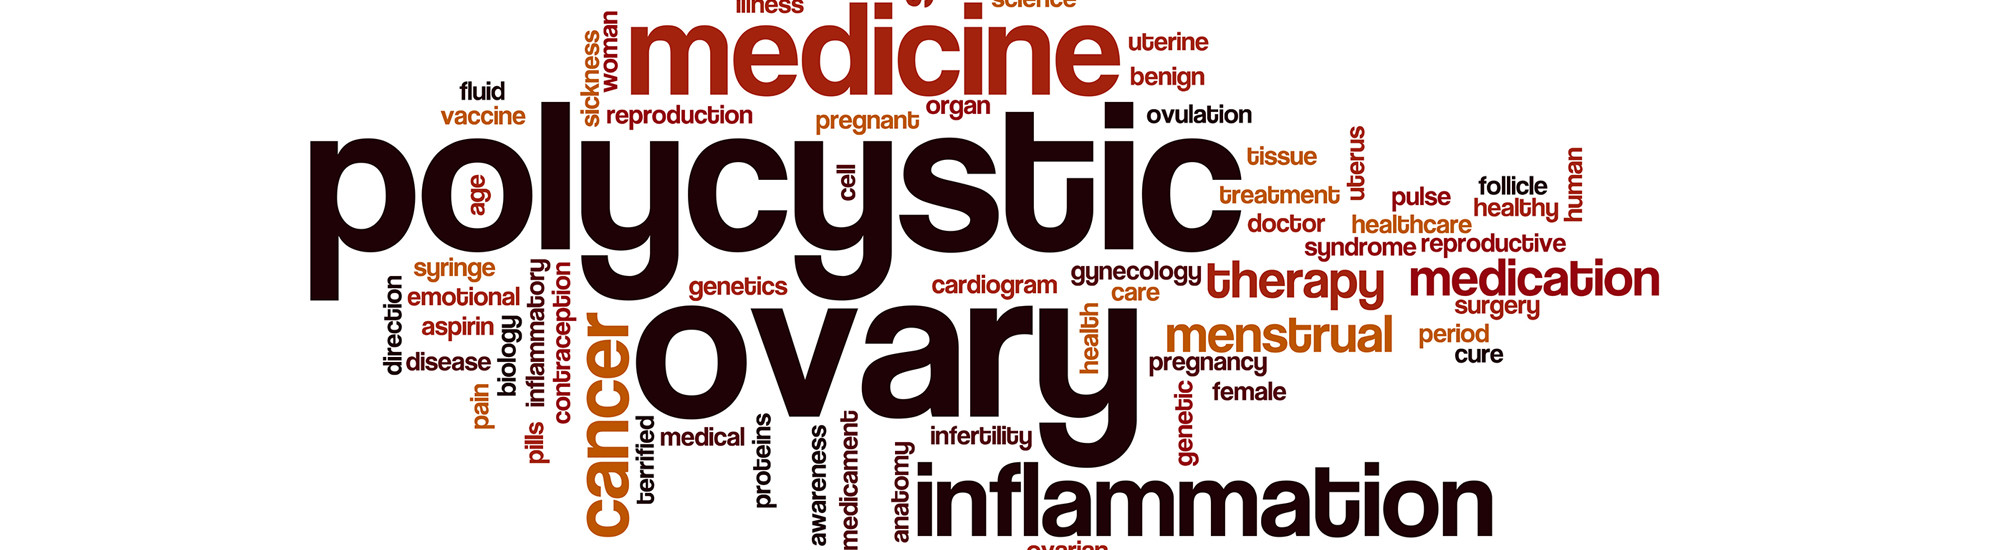 Ayurvedic treatment for Polycystic ovary syndrome-Disease -PCOS or PCOD-  References